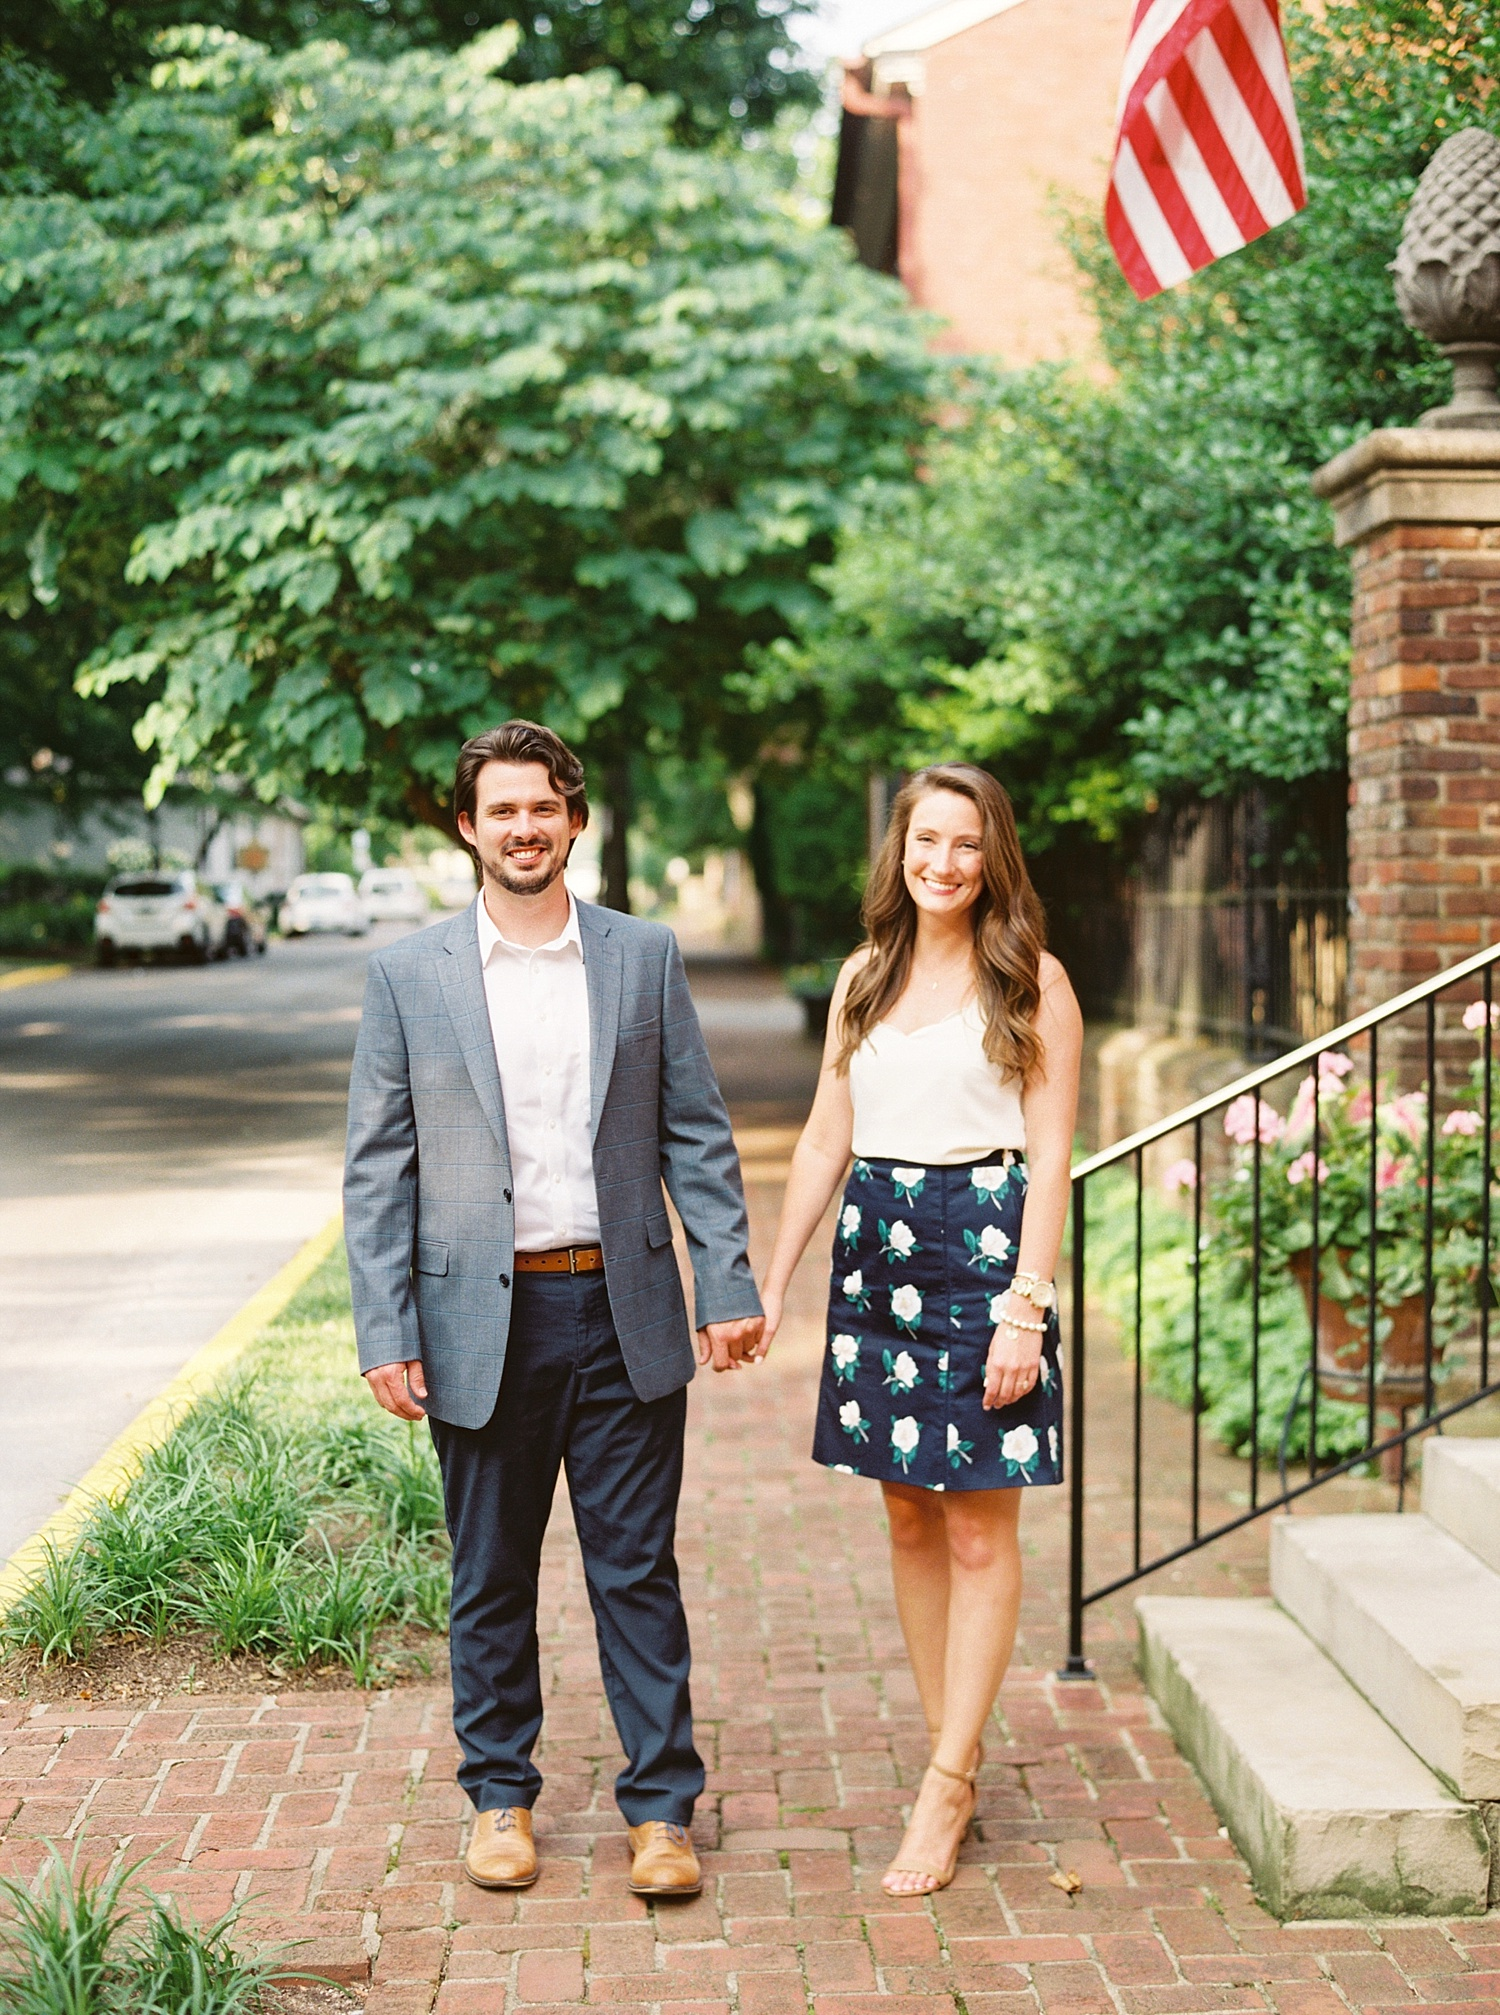 Downtown Lexington Engagement Session Talon Winery Picnic Engagement Session Gal Meets Glam Anthropologie Dress Laura Bodnar Photography Lexington Wedding Photographer Film Photography_0002-1.jpg